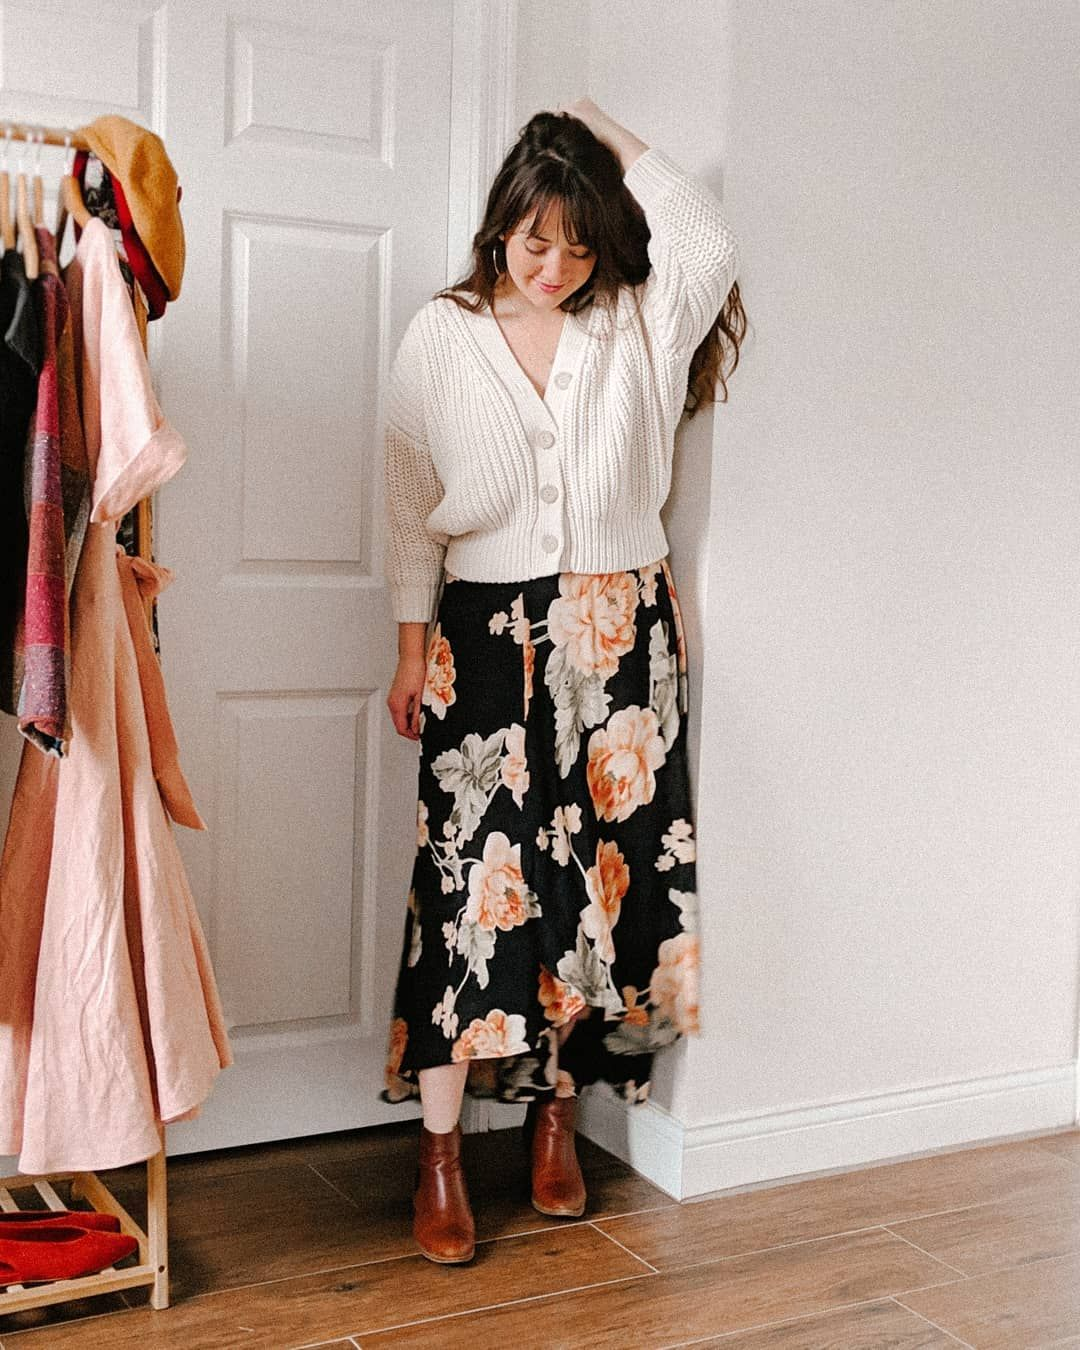 Style Blogger Inspired By The Classic Looks Of Audrey Hepburn Vintage Silhouettes Chic Parisian Street Style Rich C Floral Maxi Dress Chunky Sweater Clothes [ 1350 x 1080 Pixel ]